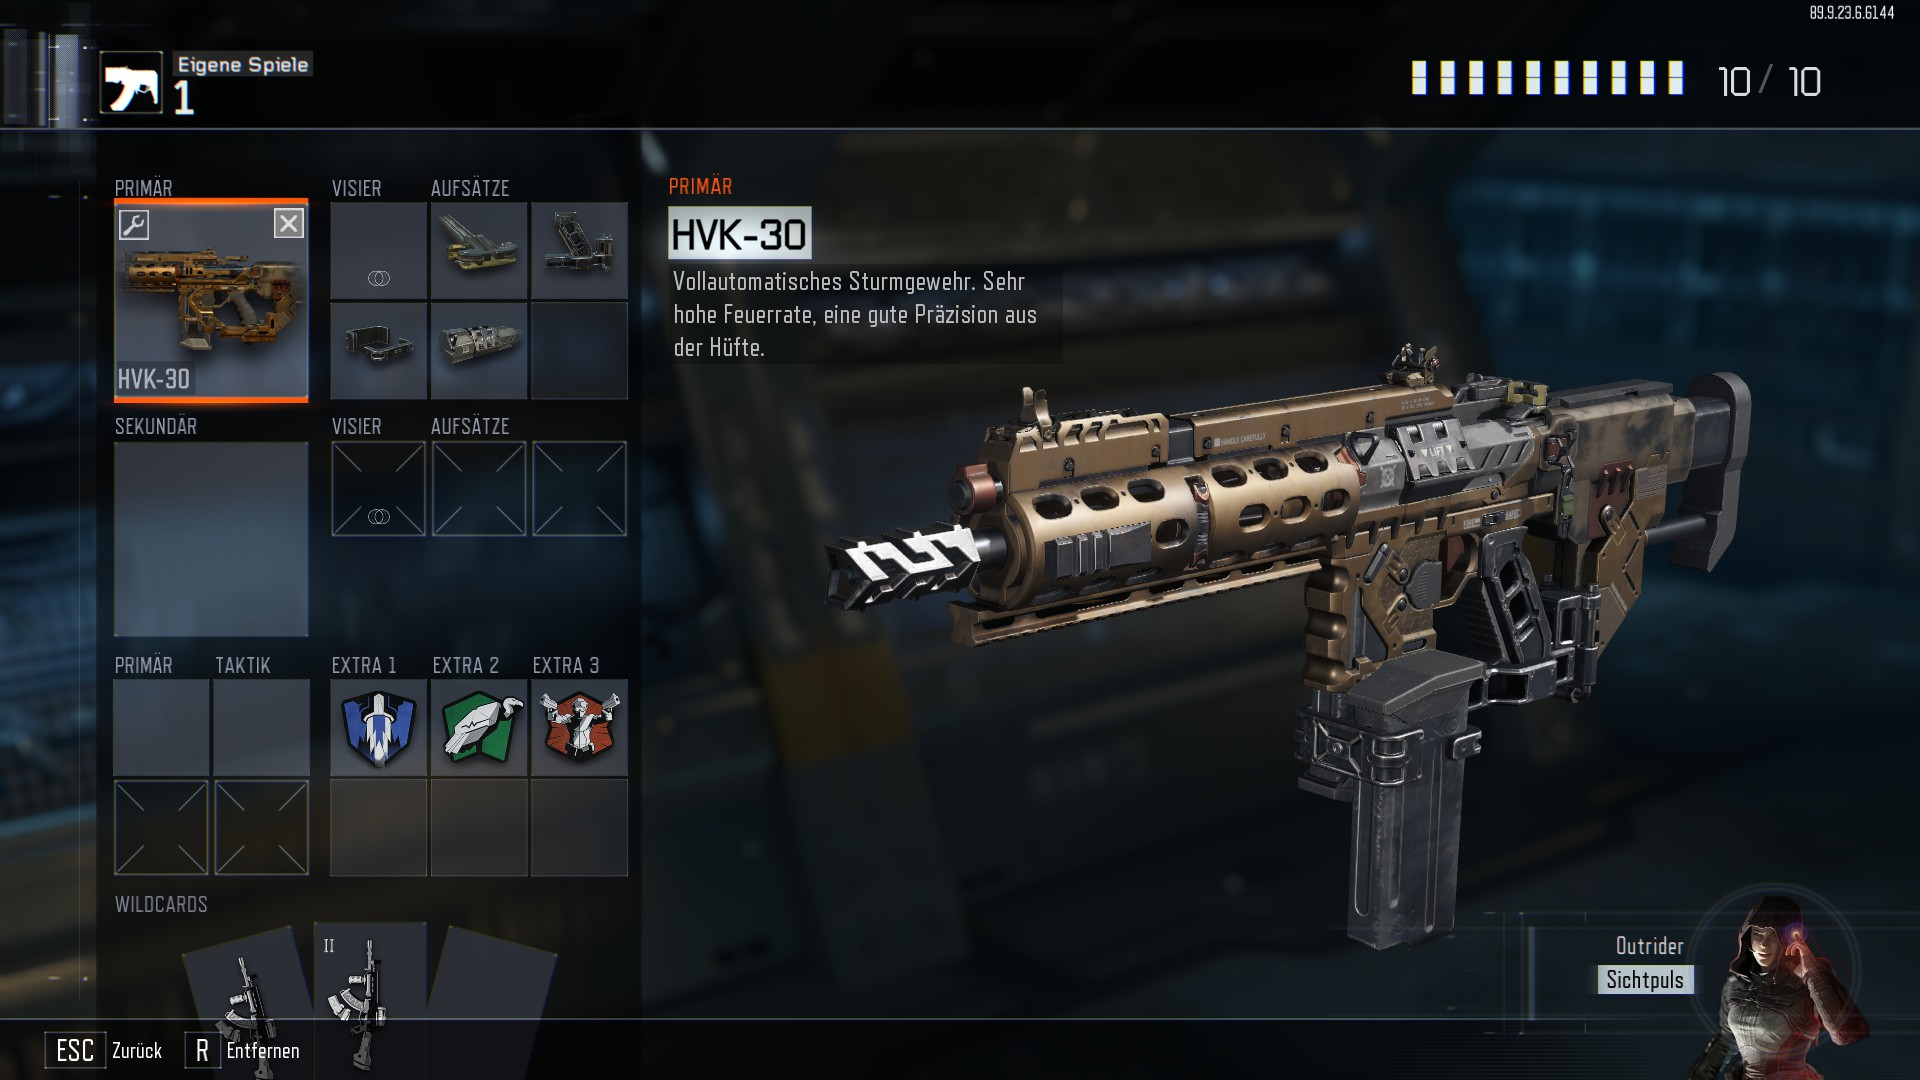 steam community guide so anyone noob can make a nuclear in bo3